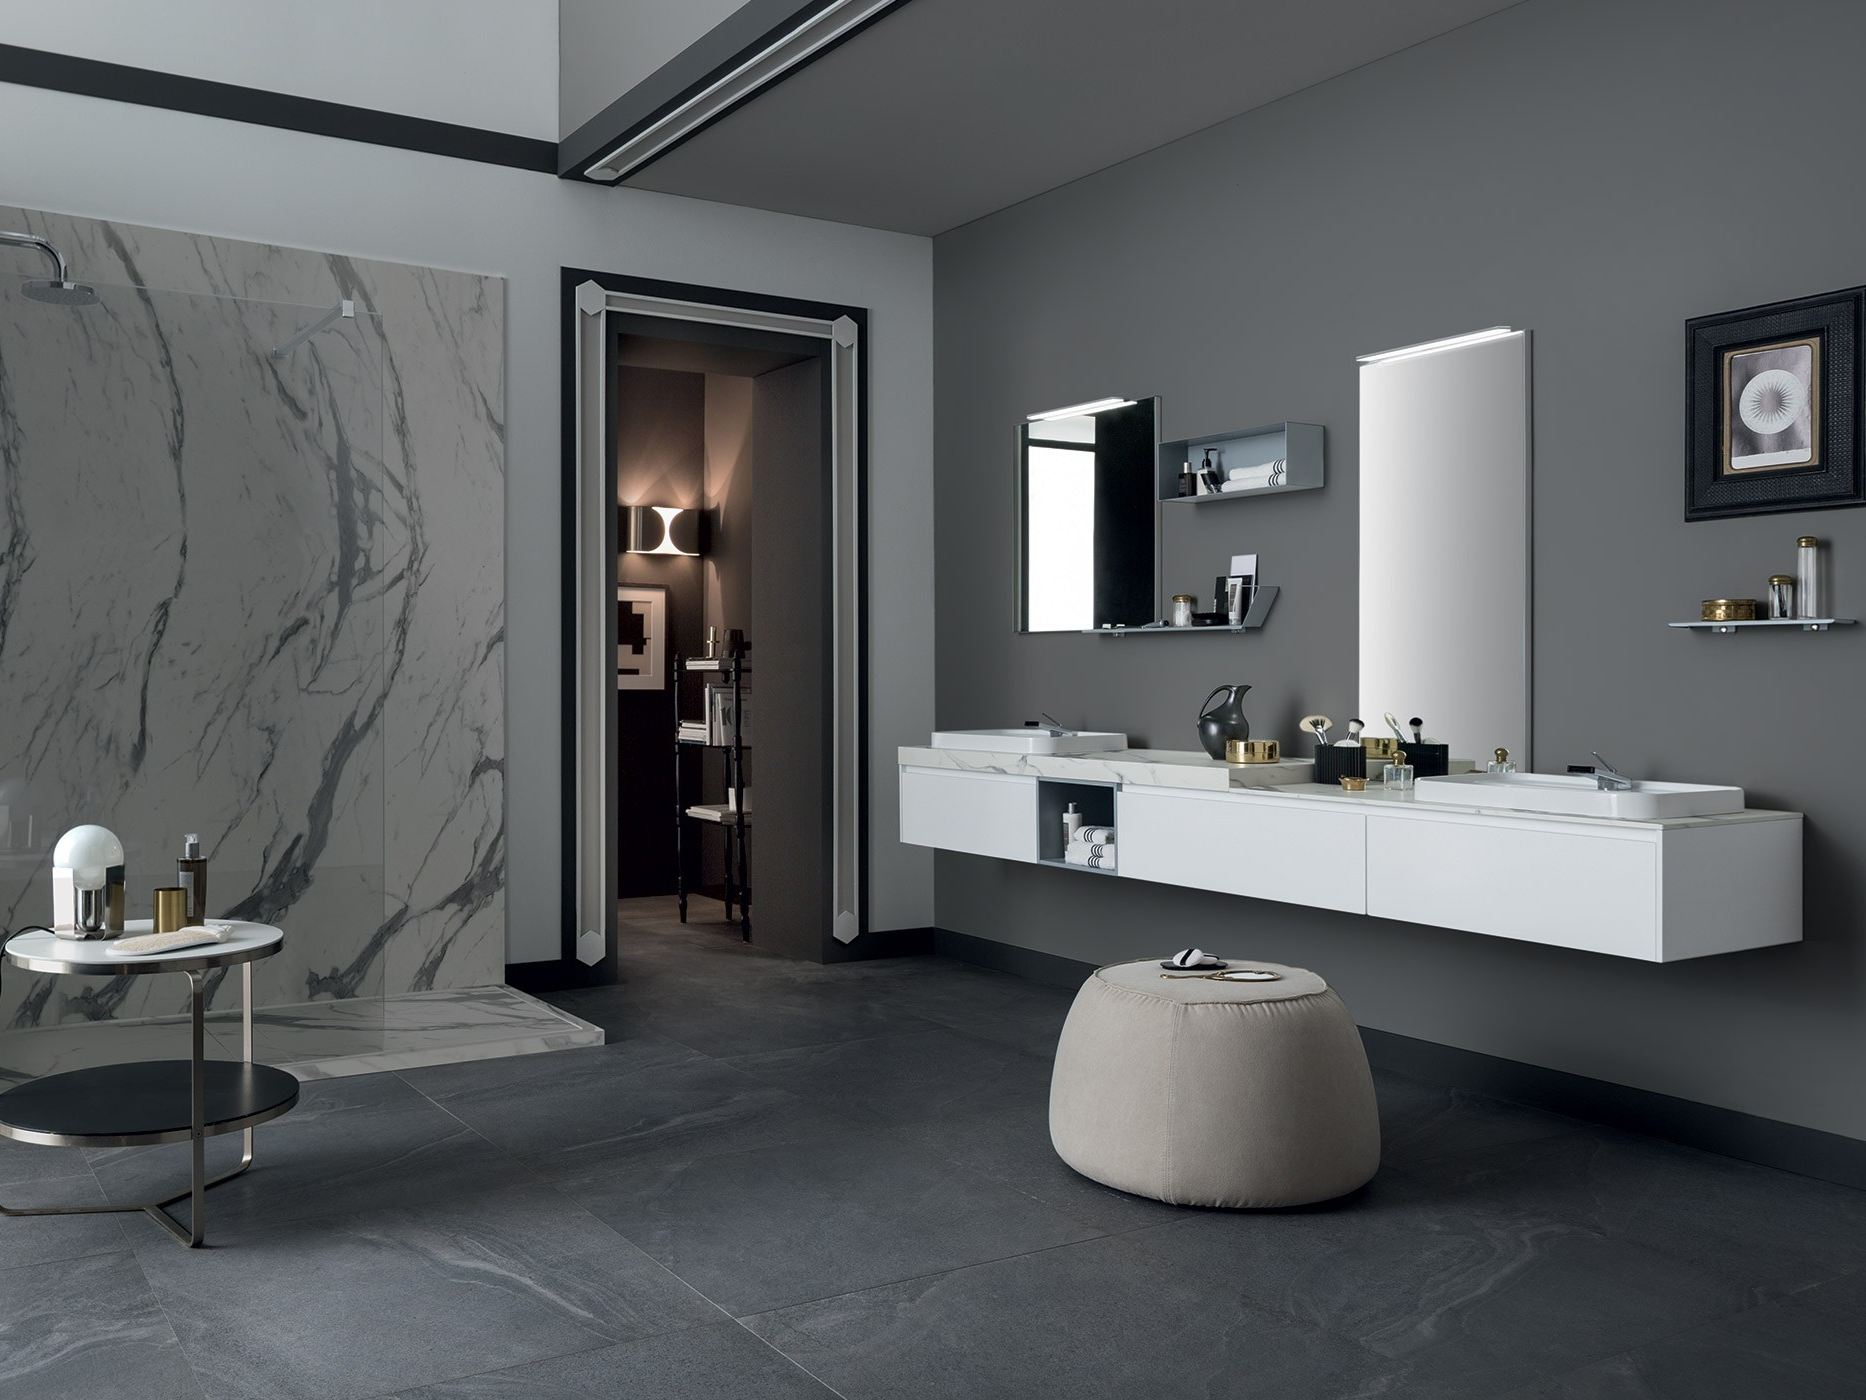 Portasalviette Bagno Mobile Bagno In Stile Moderno 80 3 Collection By Rab